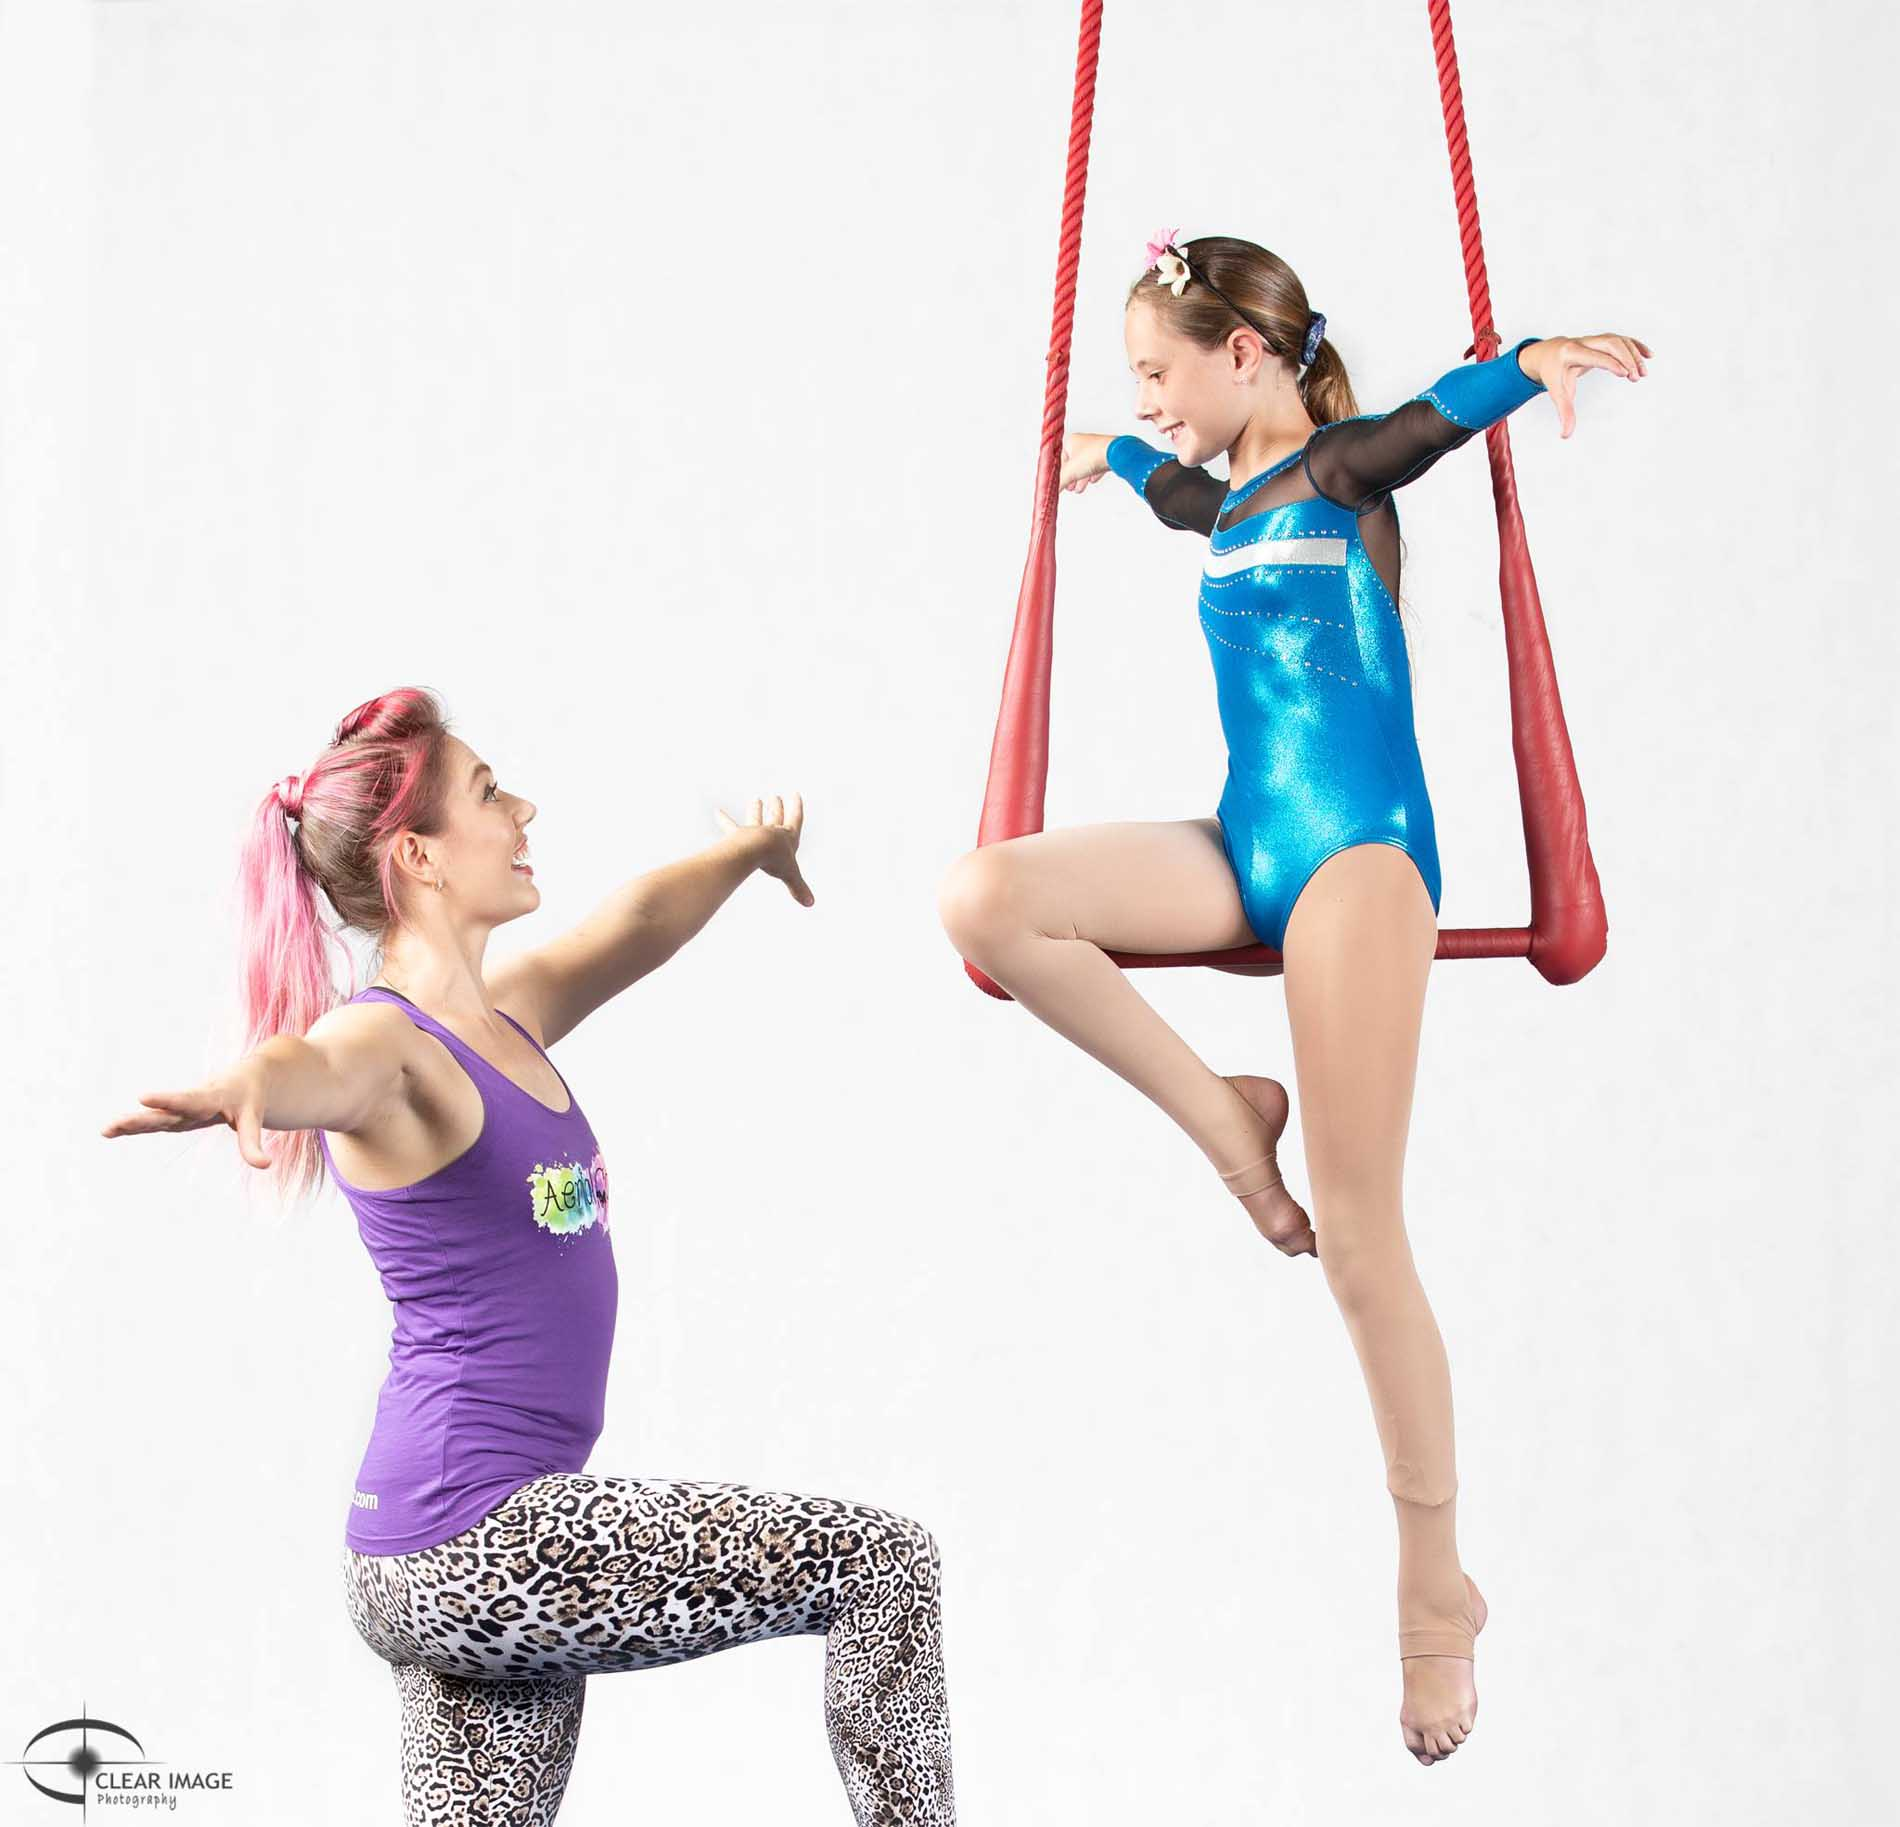 Teacher helping a student with aerials